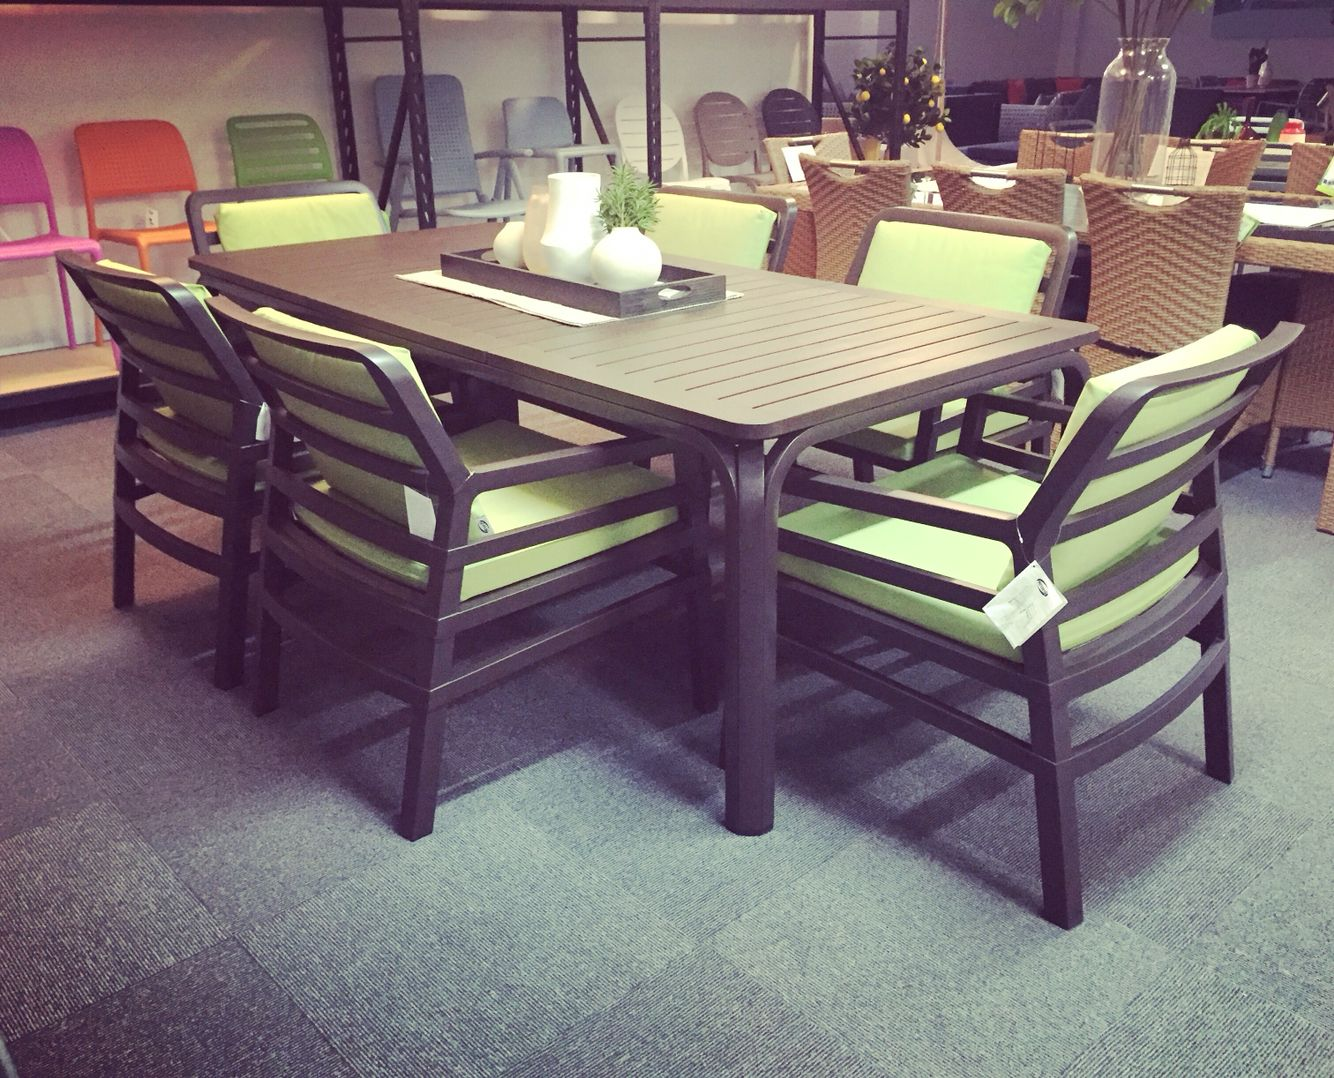 Nardi Alloro 210 Dining Table With Aria Chairs In Caffe/lime